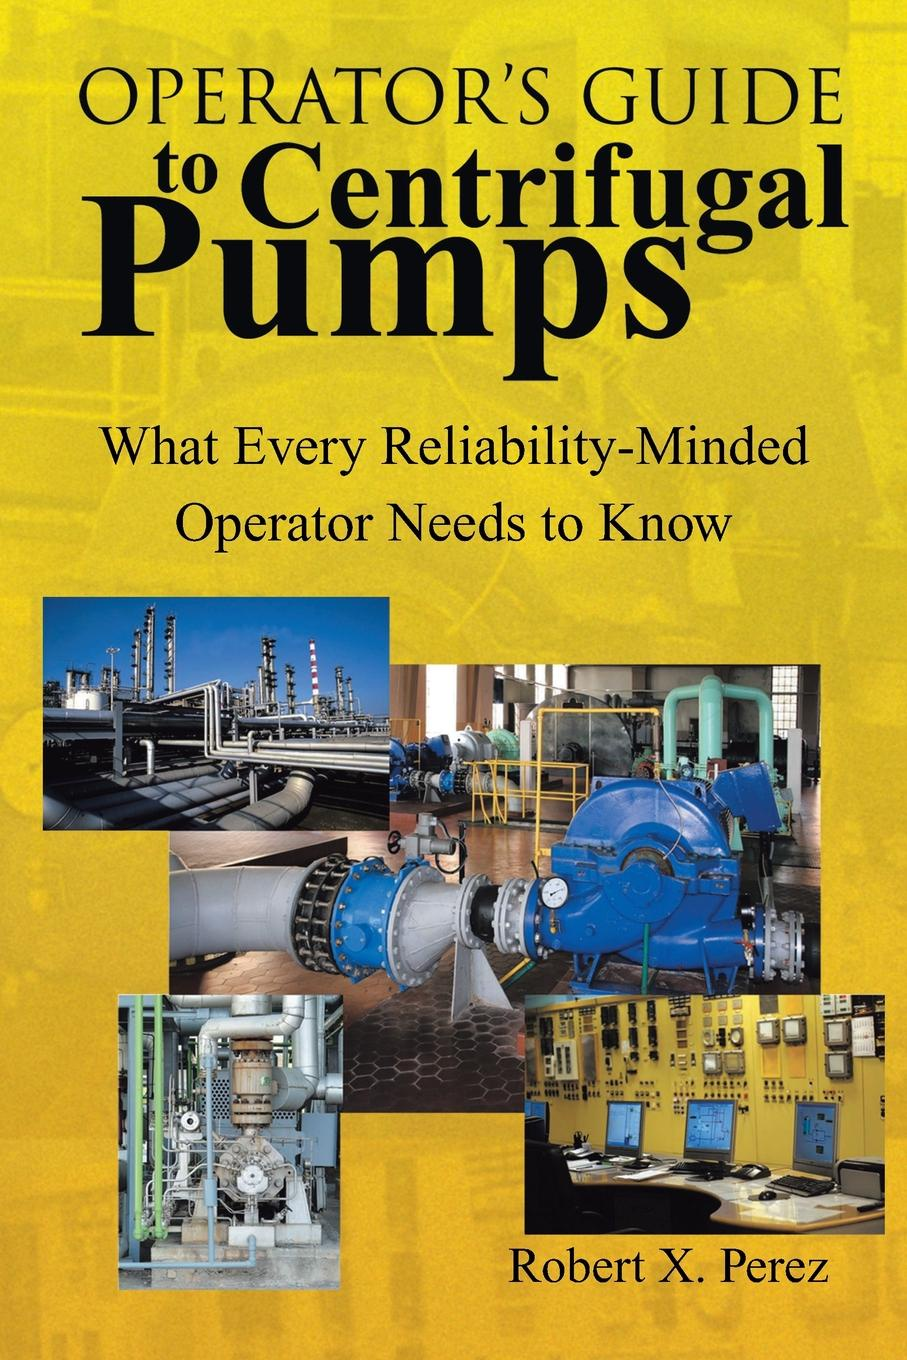 Robert X. Perez. Operator.S Guide to Centrifugal Pumps. What Every Reliability-Minded Operator Needs to Know